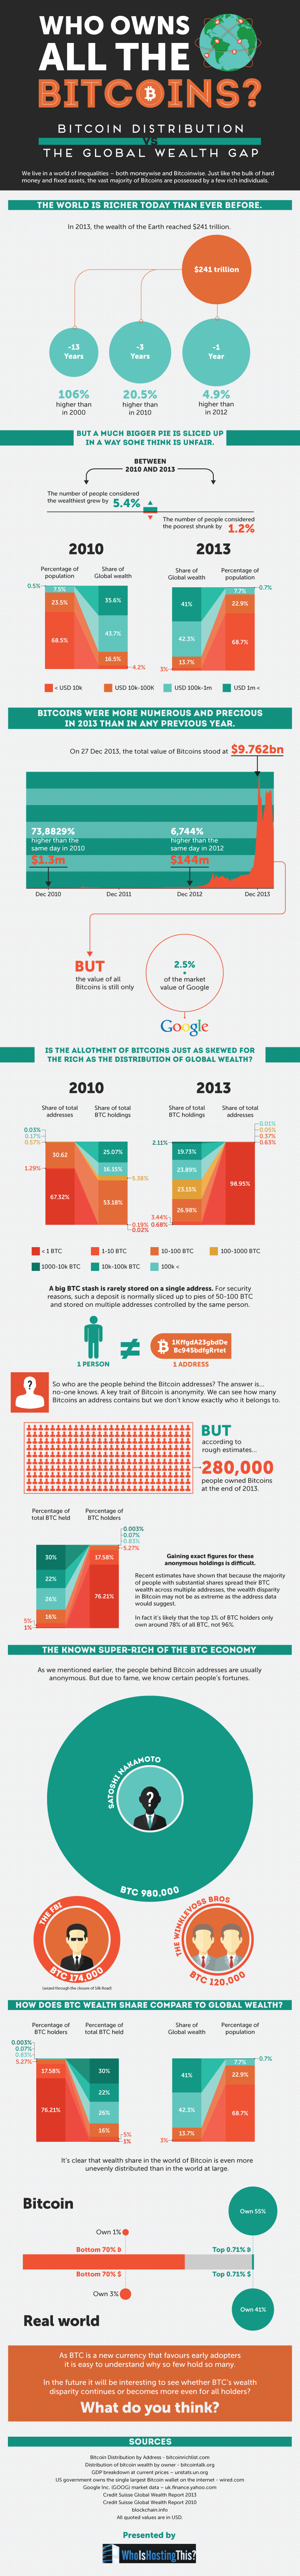 Who Owns All the Bitcoins? #infographic